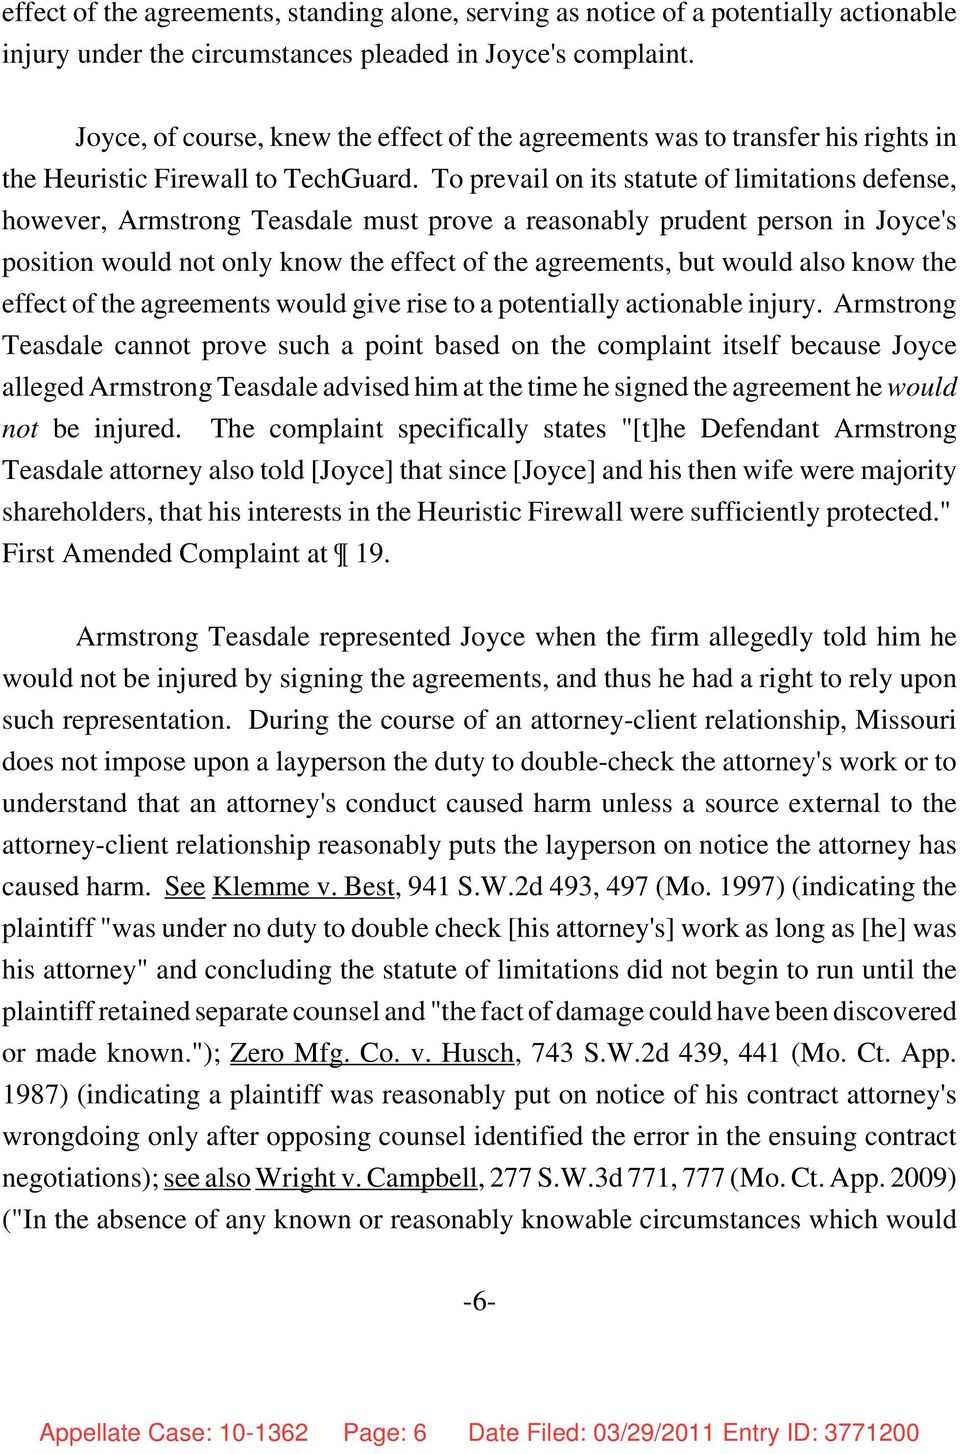 To prevail on its statute of limitations defense, however, Armstrong Teasdale must prove a reasonably prudent person in Joyce's position would not only know the effect of the agreements, but would